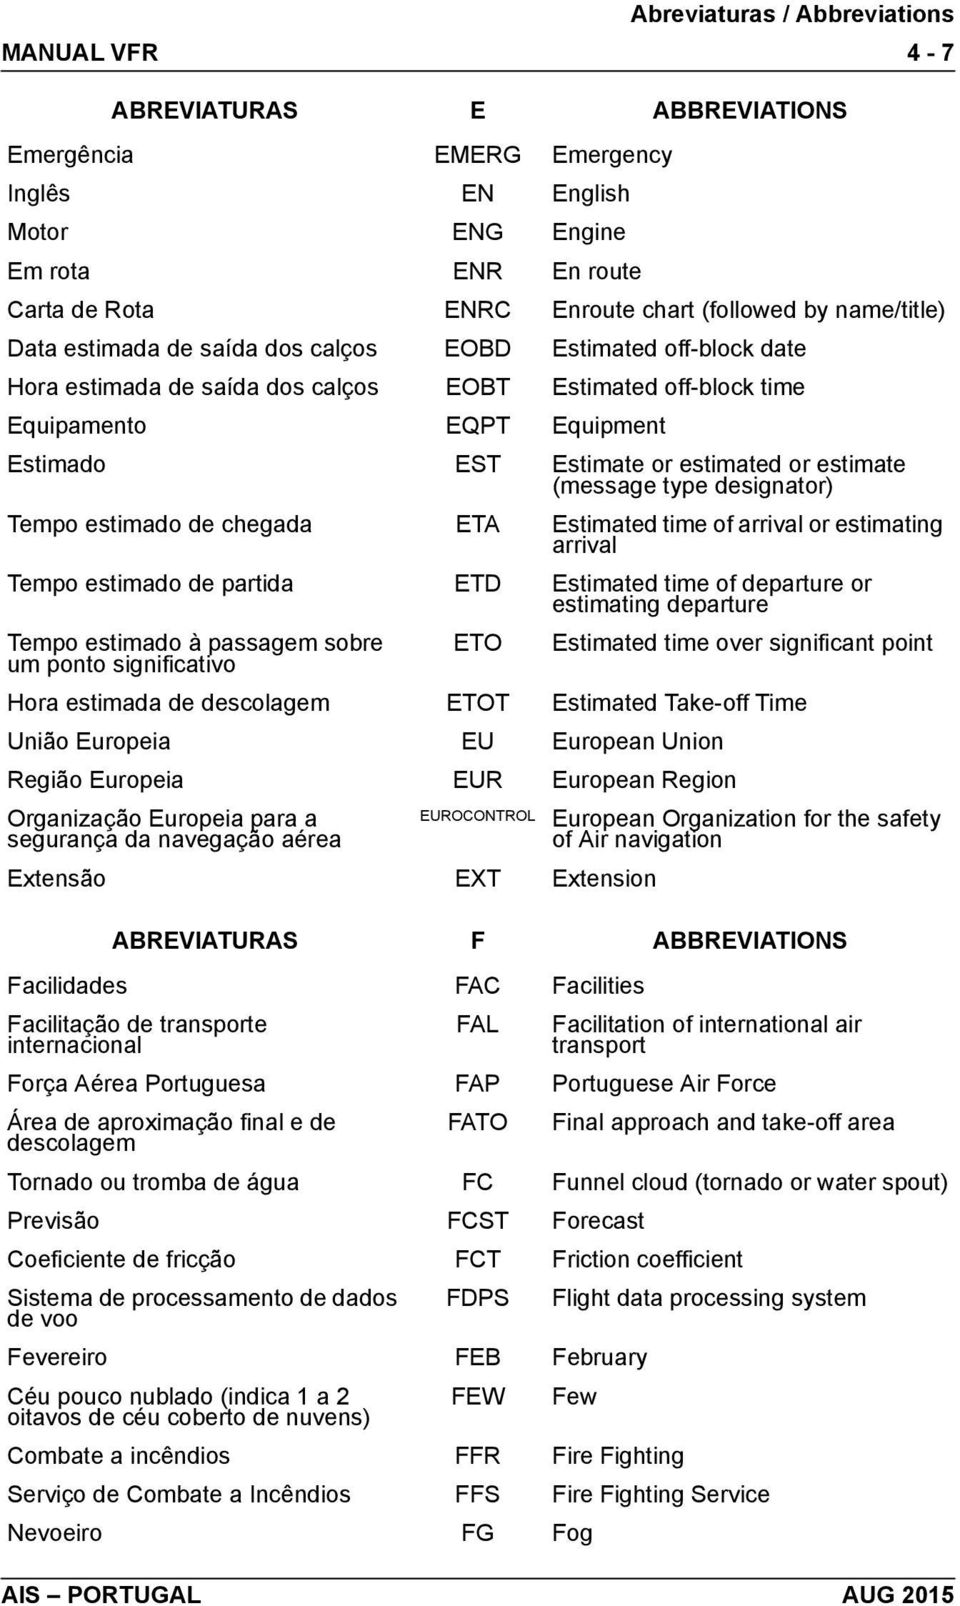 designator) Tempo estimado de chegada ETA Estimated time of arrival or estimating arrival Tempo estimado de partida ETD Estimated time of departure or estimating departure Tempo estimado à passagem